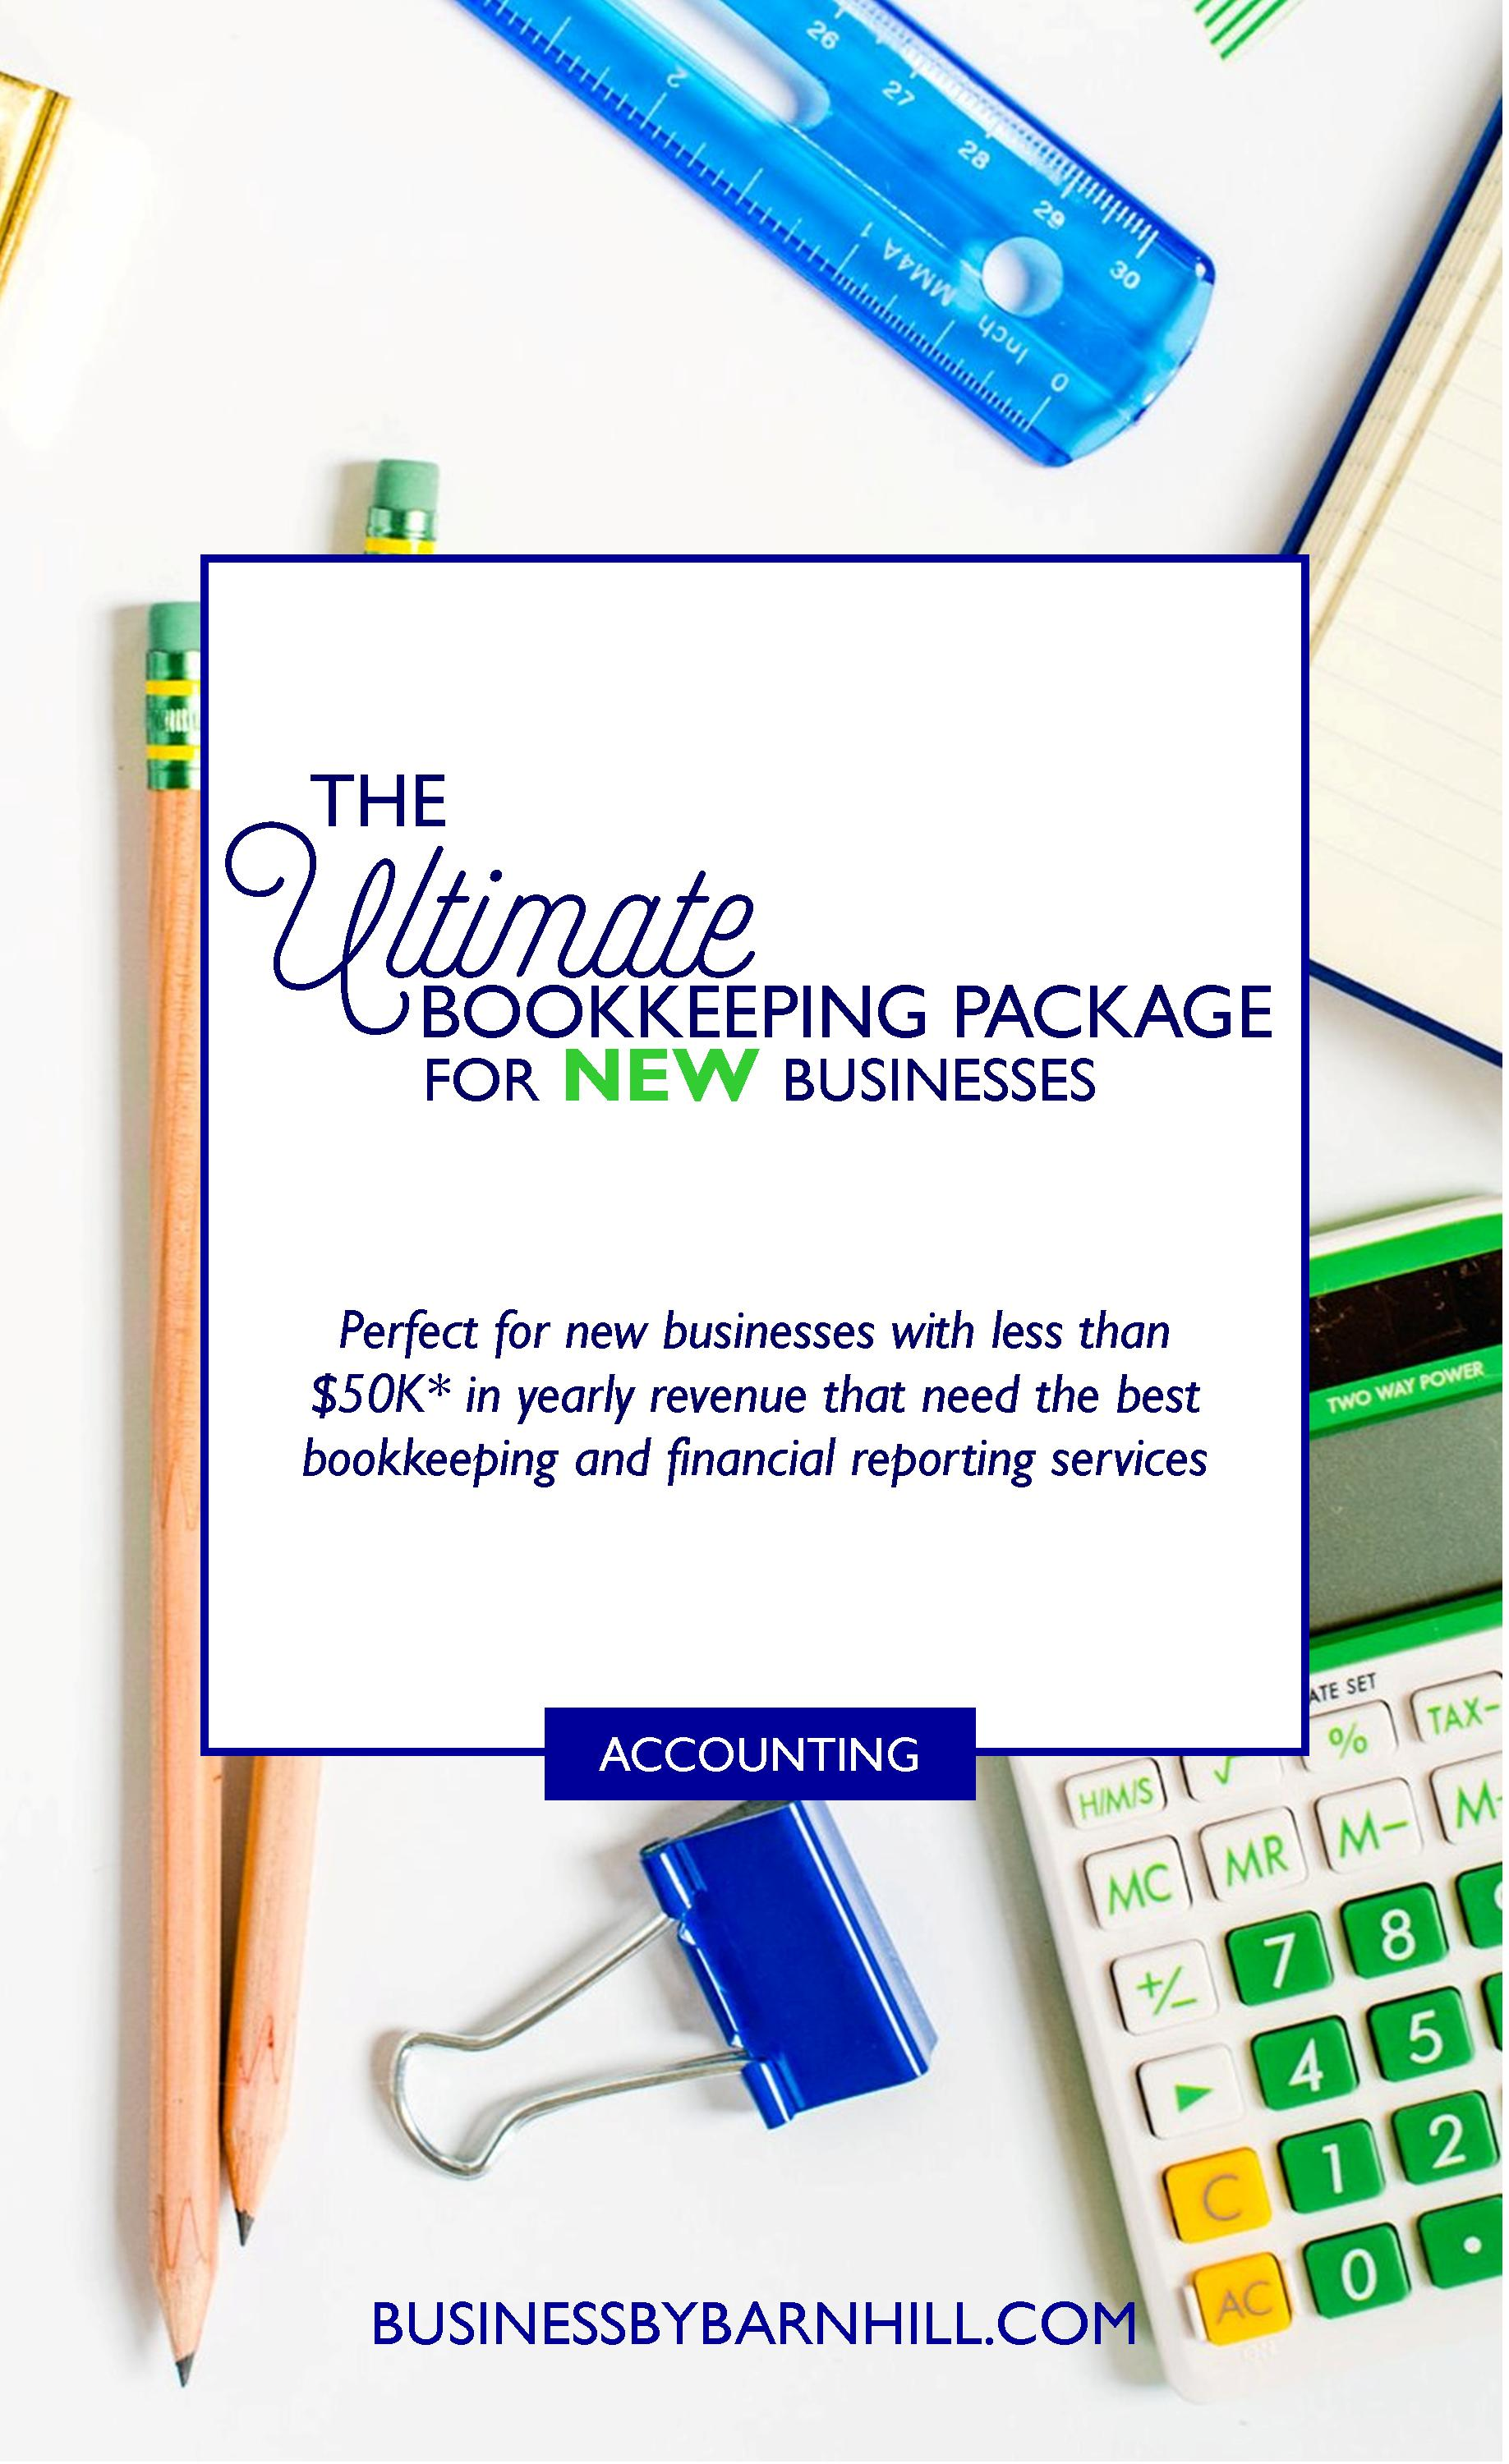 business by barnhill pinterest ultimate bookkeeping package for new business.jpg